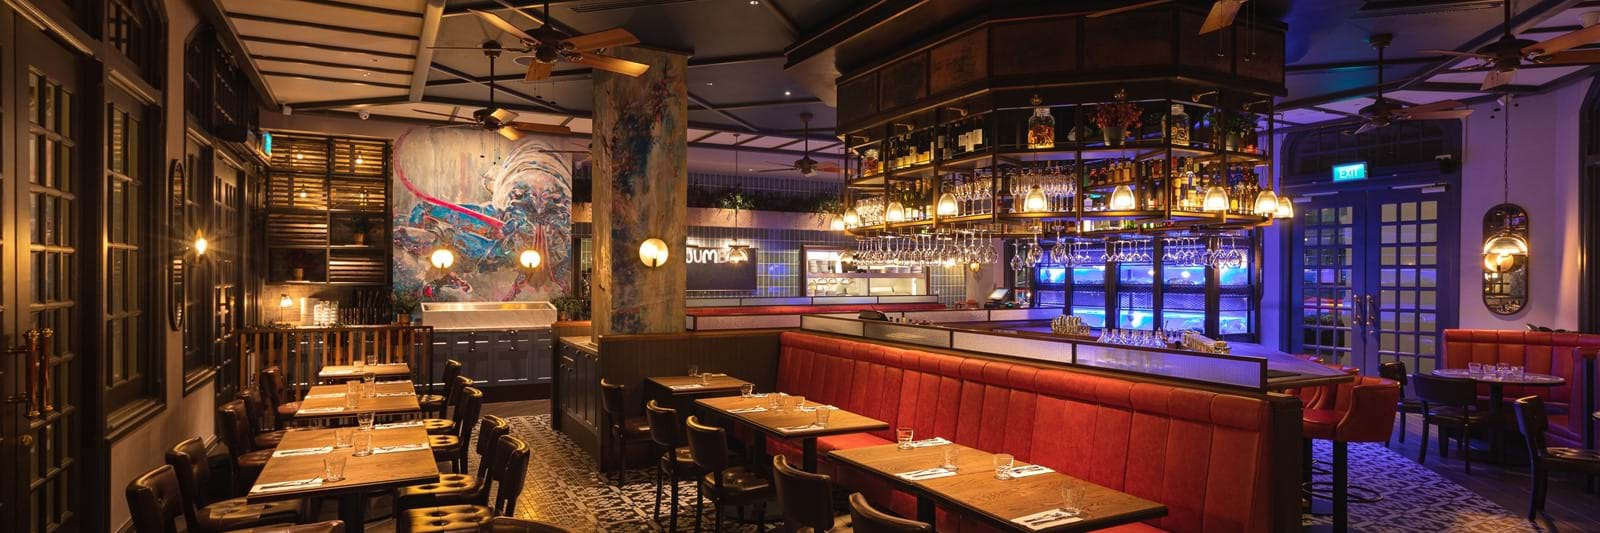 Rockett Studio - B&L Restaurant Night_01.jpg